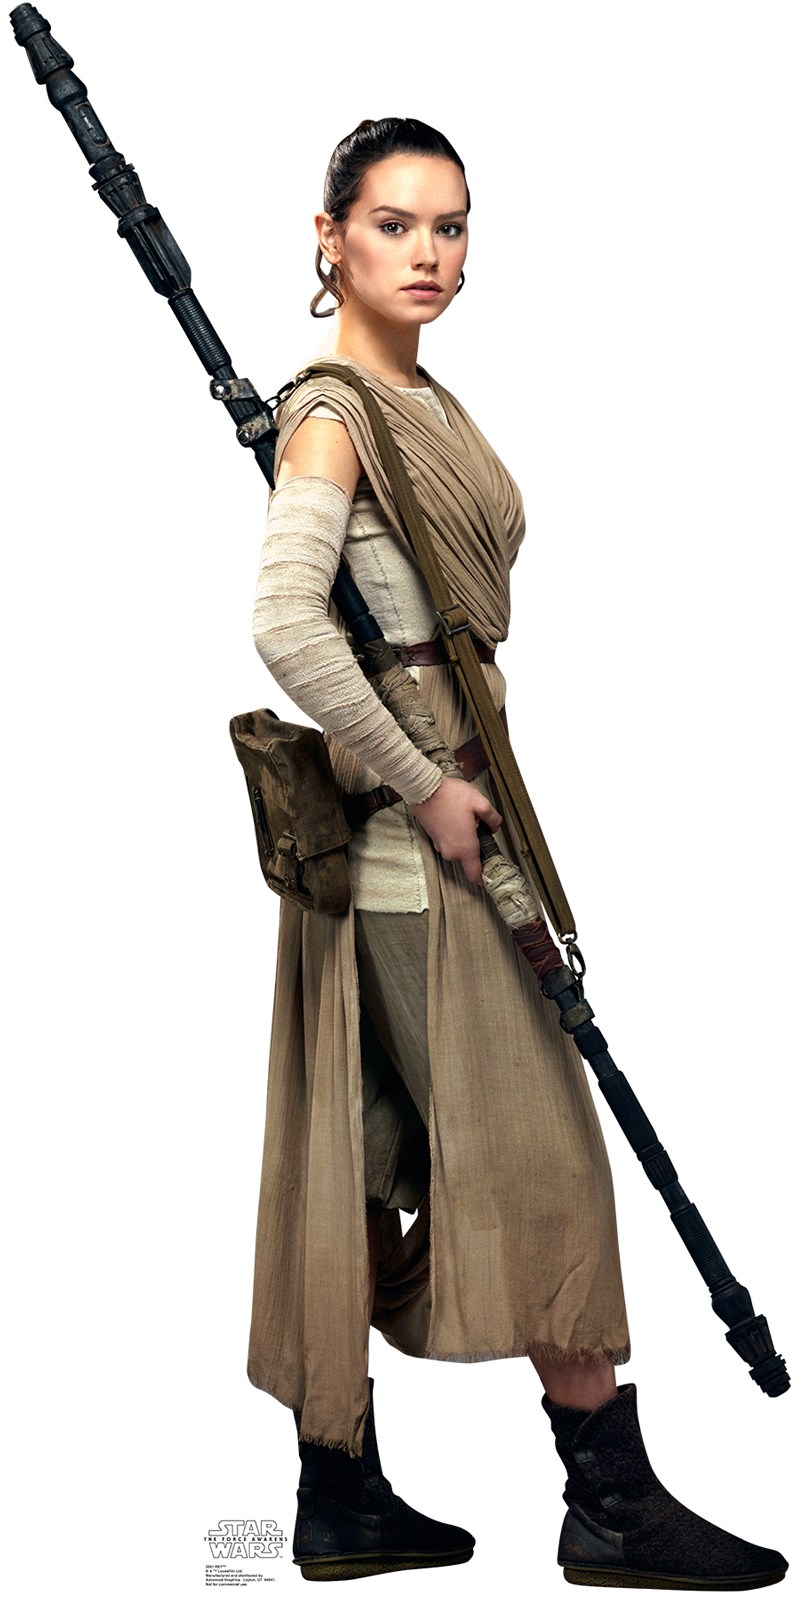 Star Wars 7 The Force Awakens Rey Standup - 6 Tall